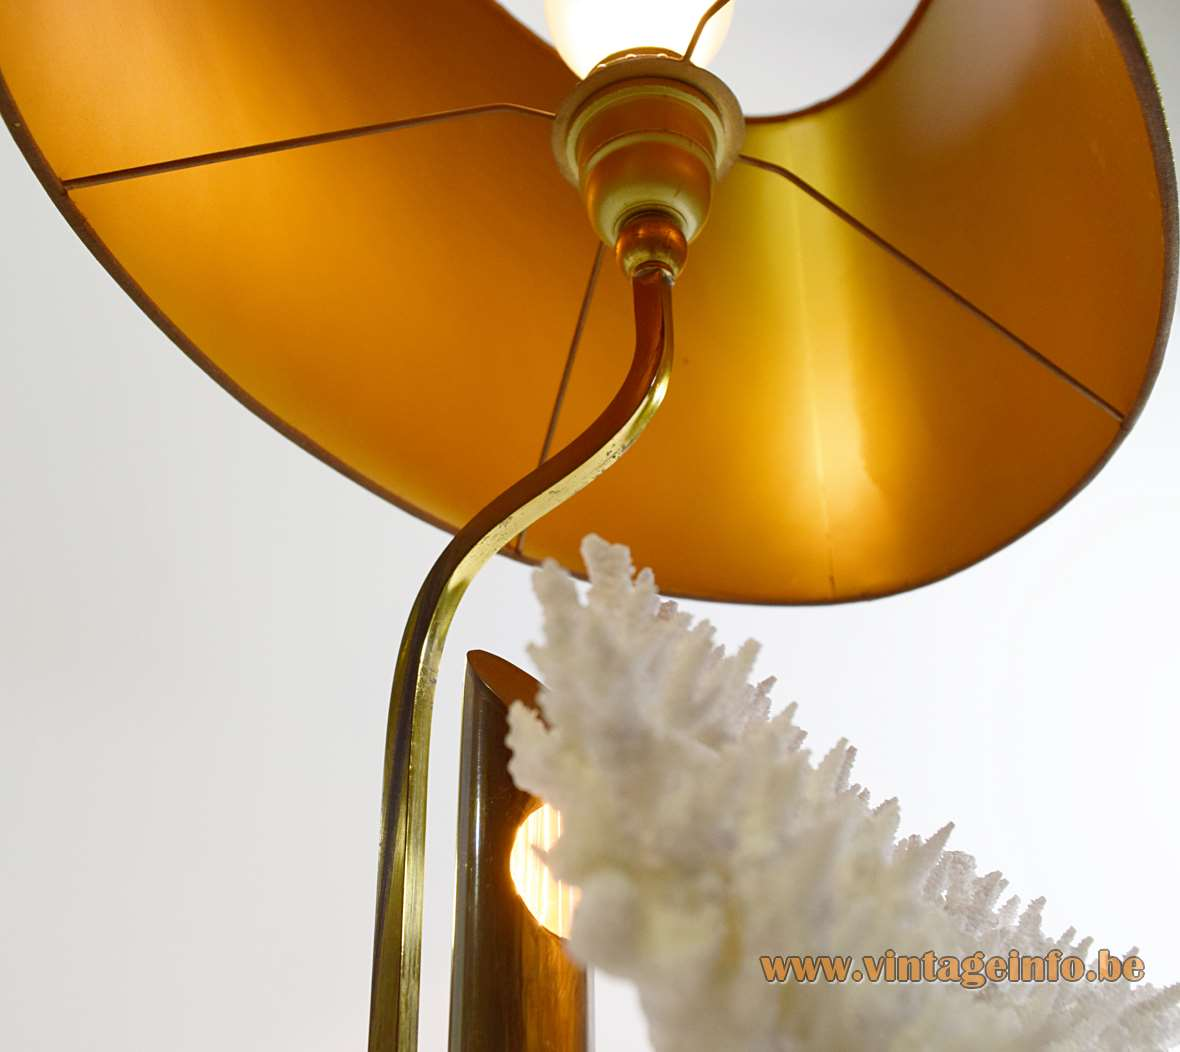 1970s Cauliflower Coral Table Lamp brass polyester 2 light bulbs fabric lampshade MCM 1960s